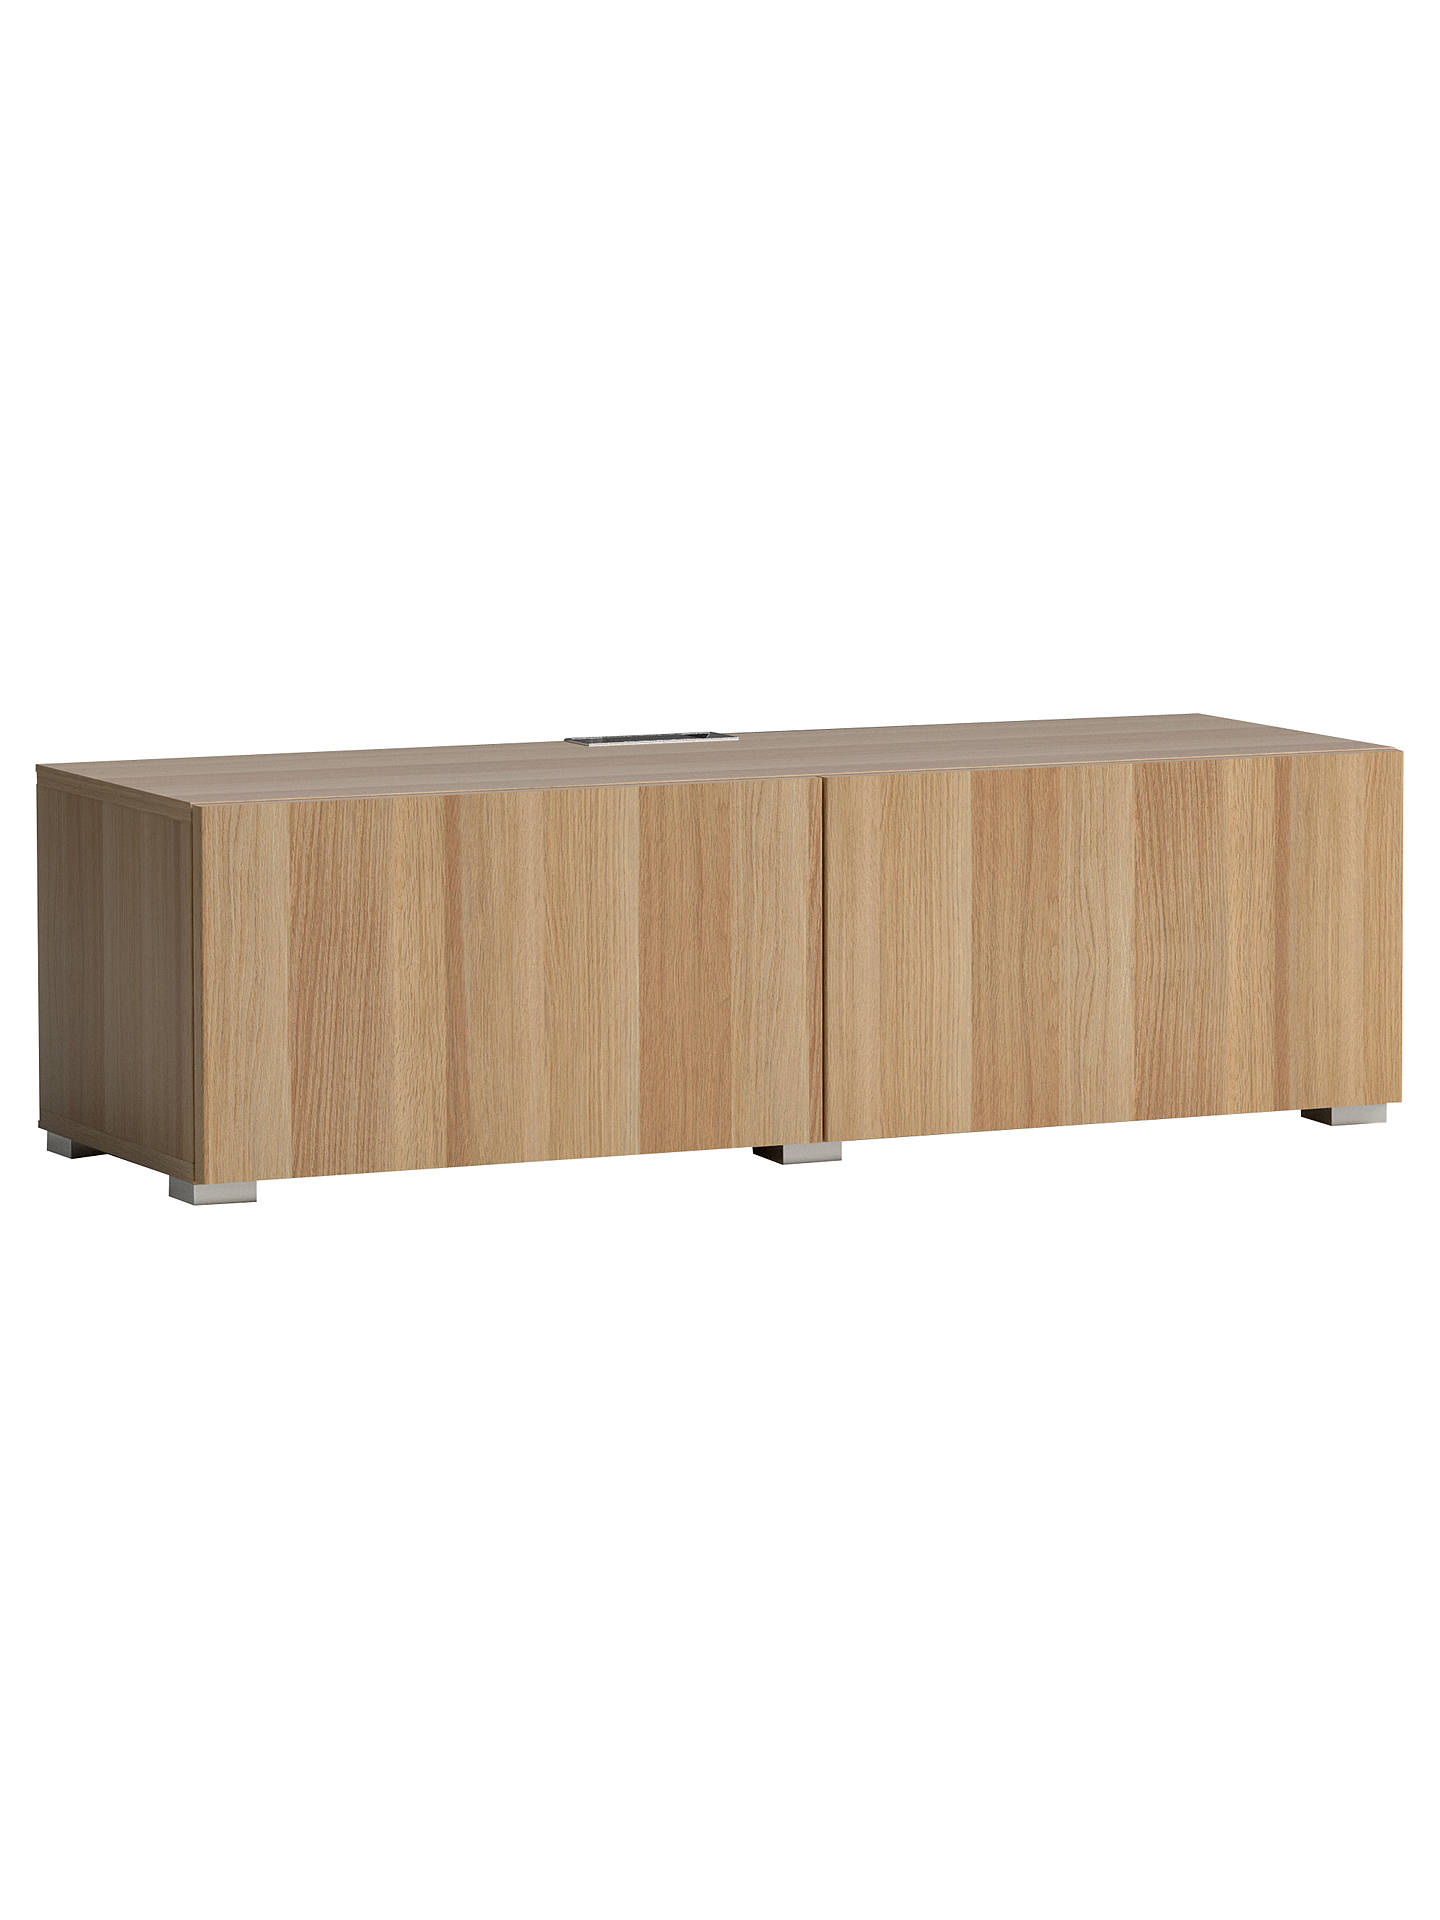 BuyHouse by John Lewis Mix it Media Unit - Oak frame / Oak doors Online at johnlewis.com